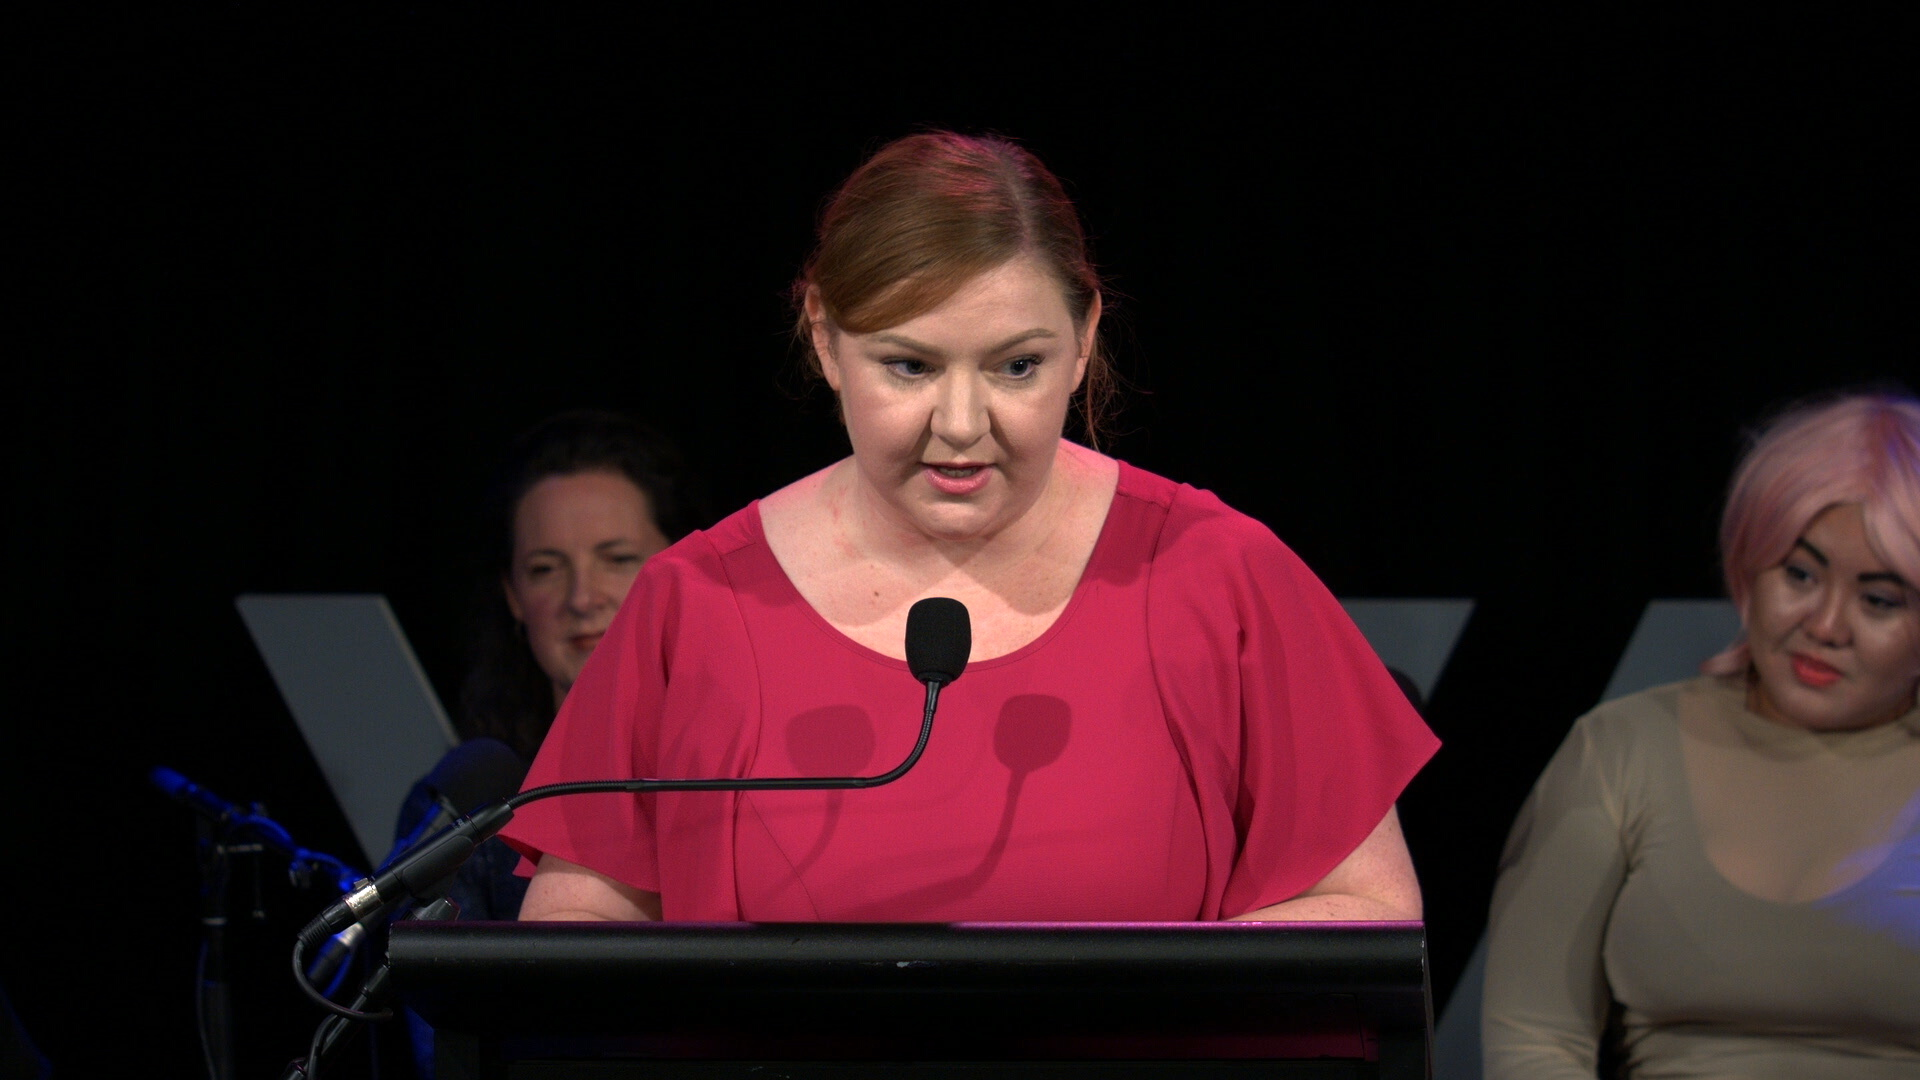 Photo of Jenna Guillaume speaking at the lectern